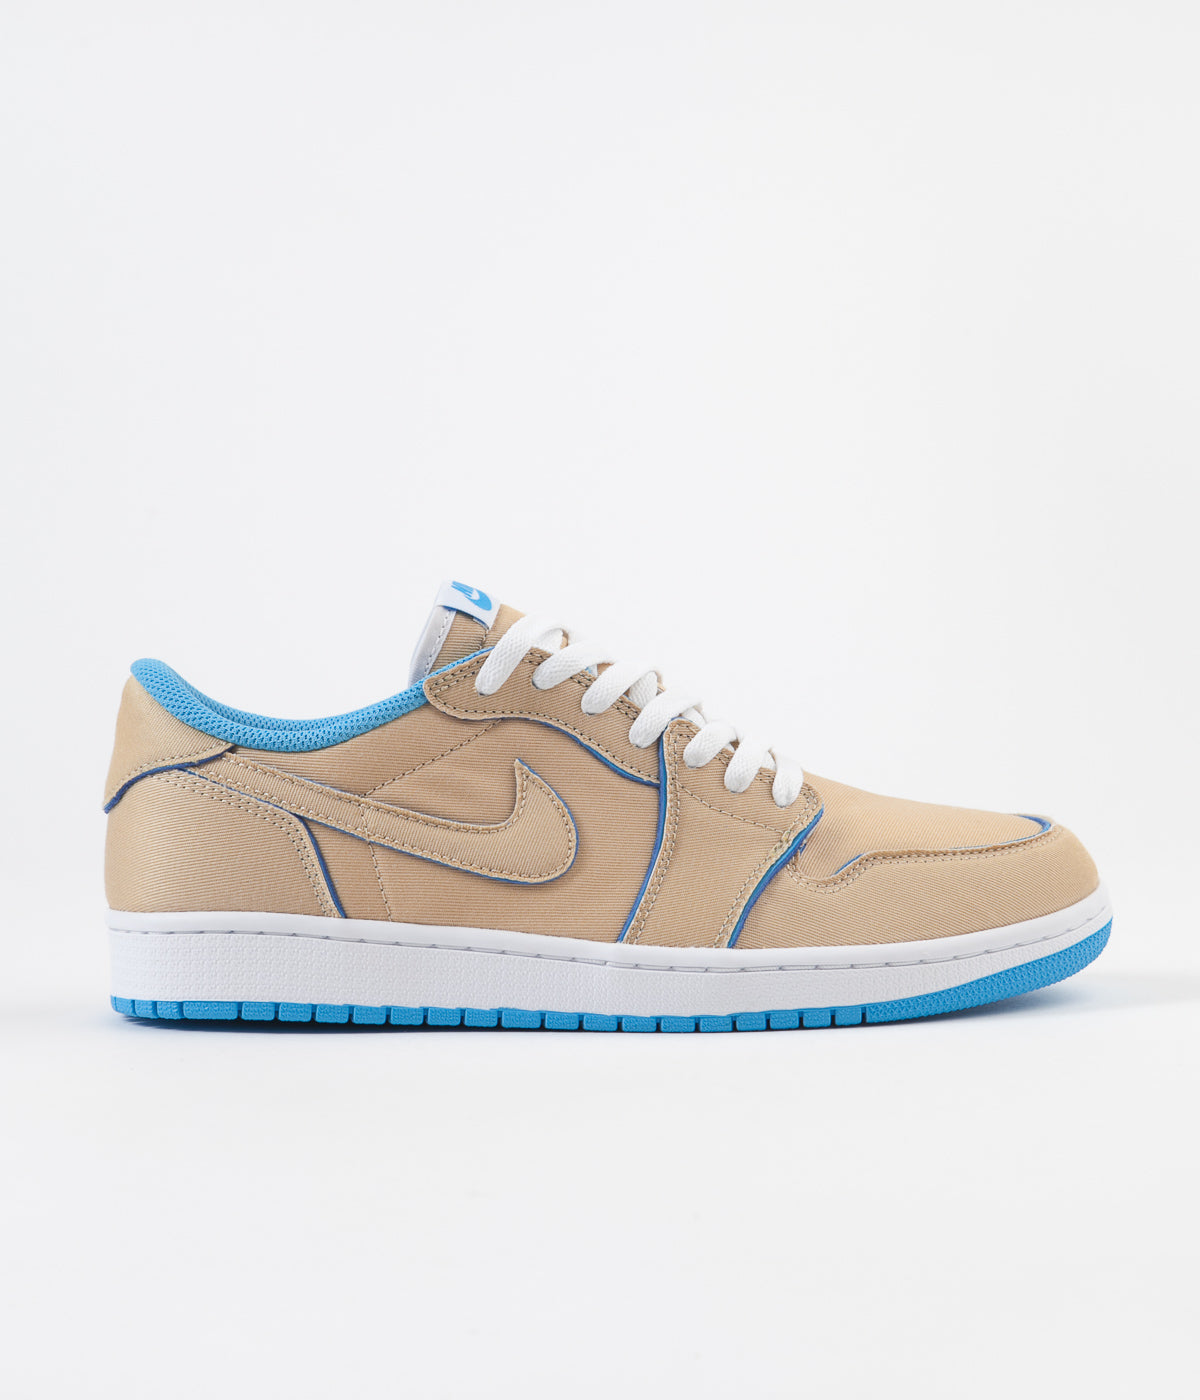 Nike SB x Air Jordan 1 Low Shoes - Desert Ore / Royal Blue - Dark Powder Blue